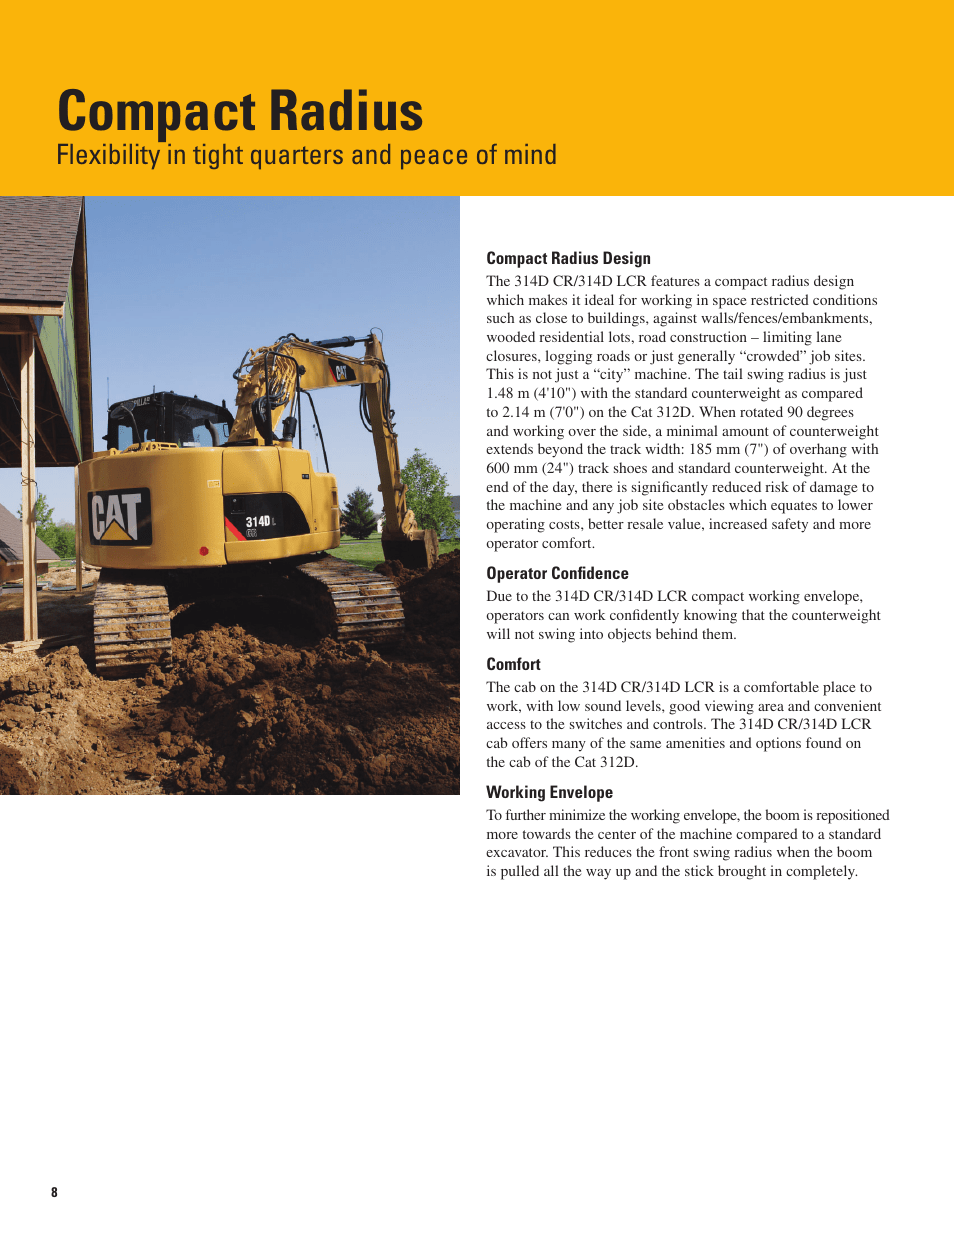 hight resolution of compact radius flexibility in tight quarters and peace of mind milton cat 314d lcr user manual page 8 32